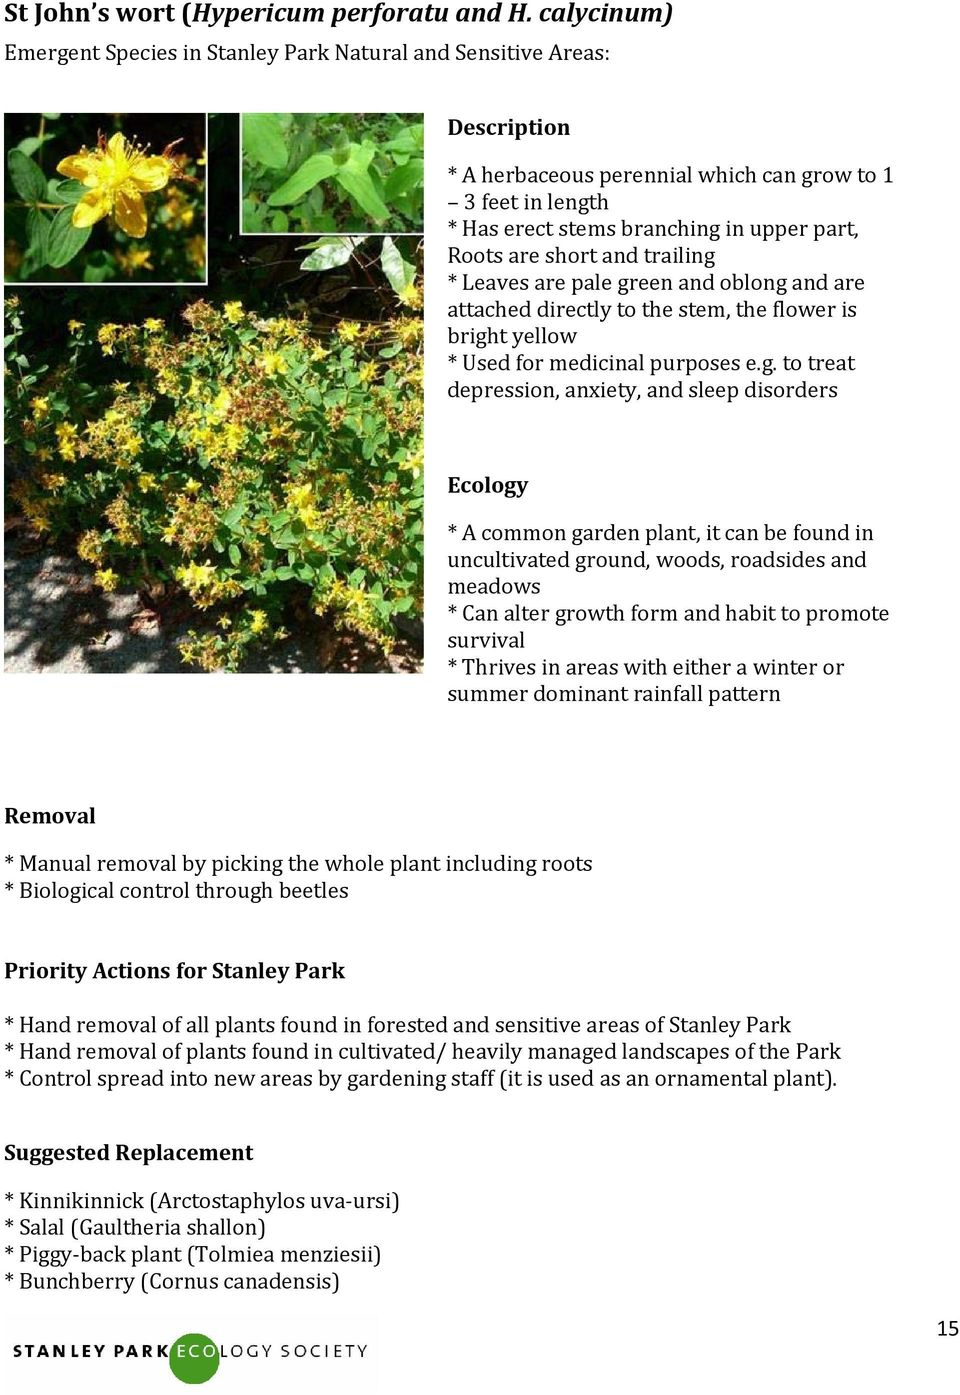 Stanley Park Ecology Society Guide to Invasive Plant